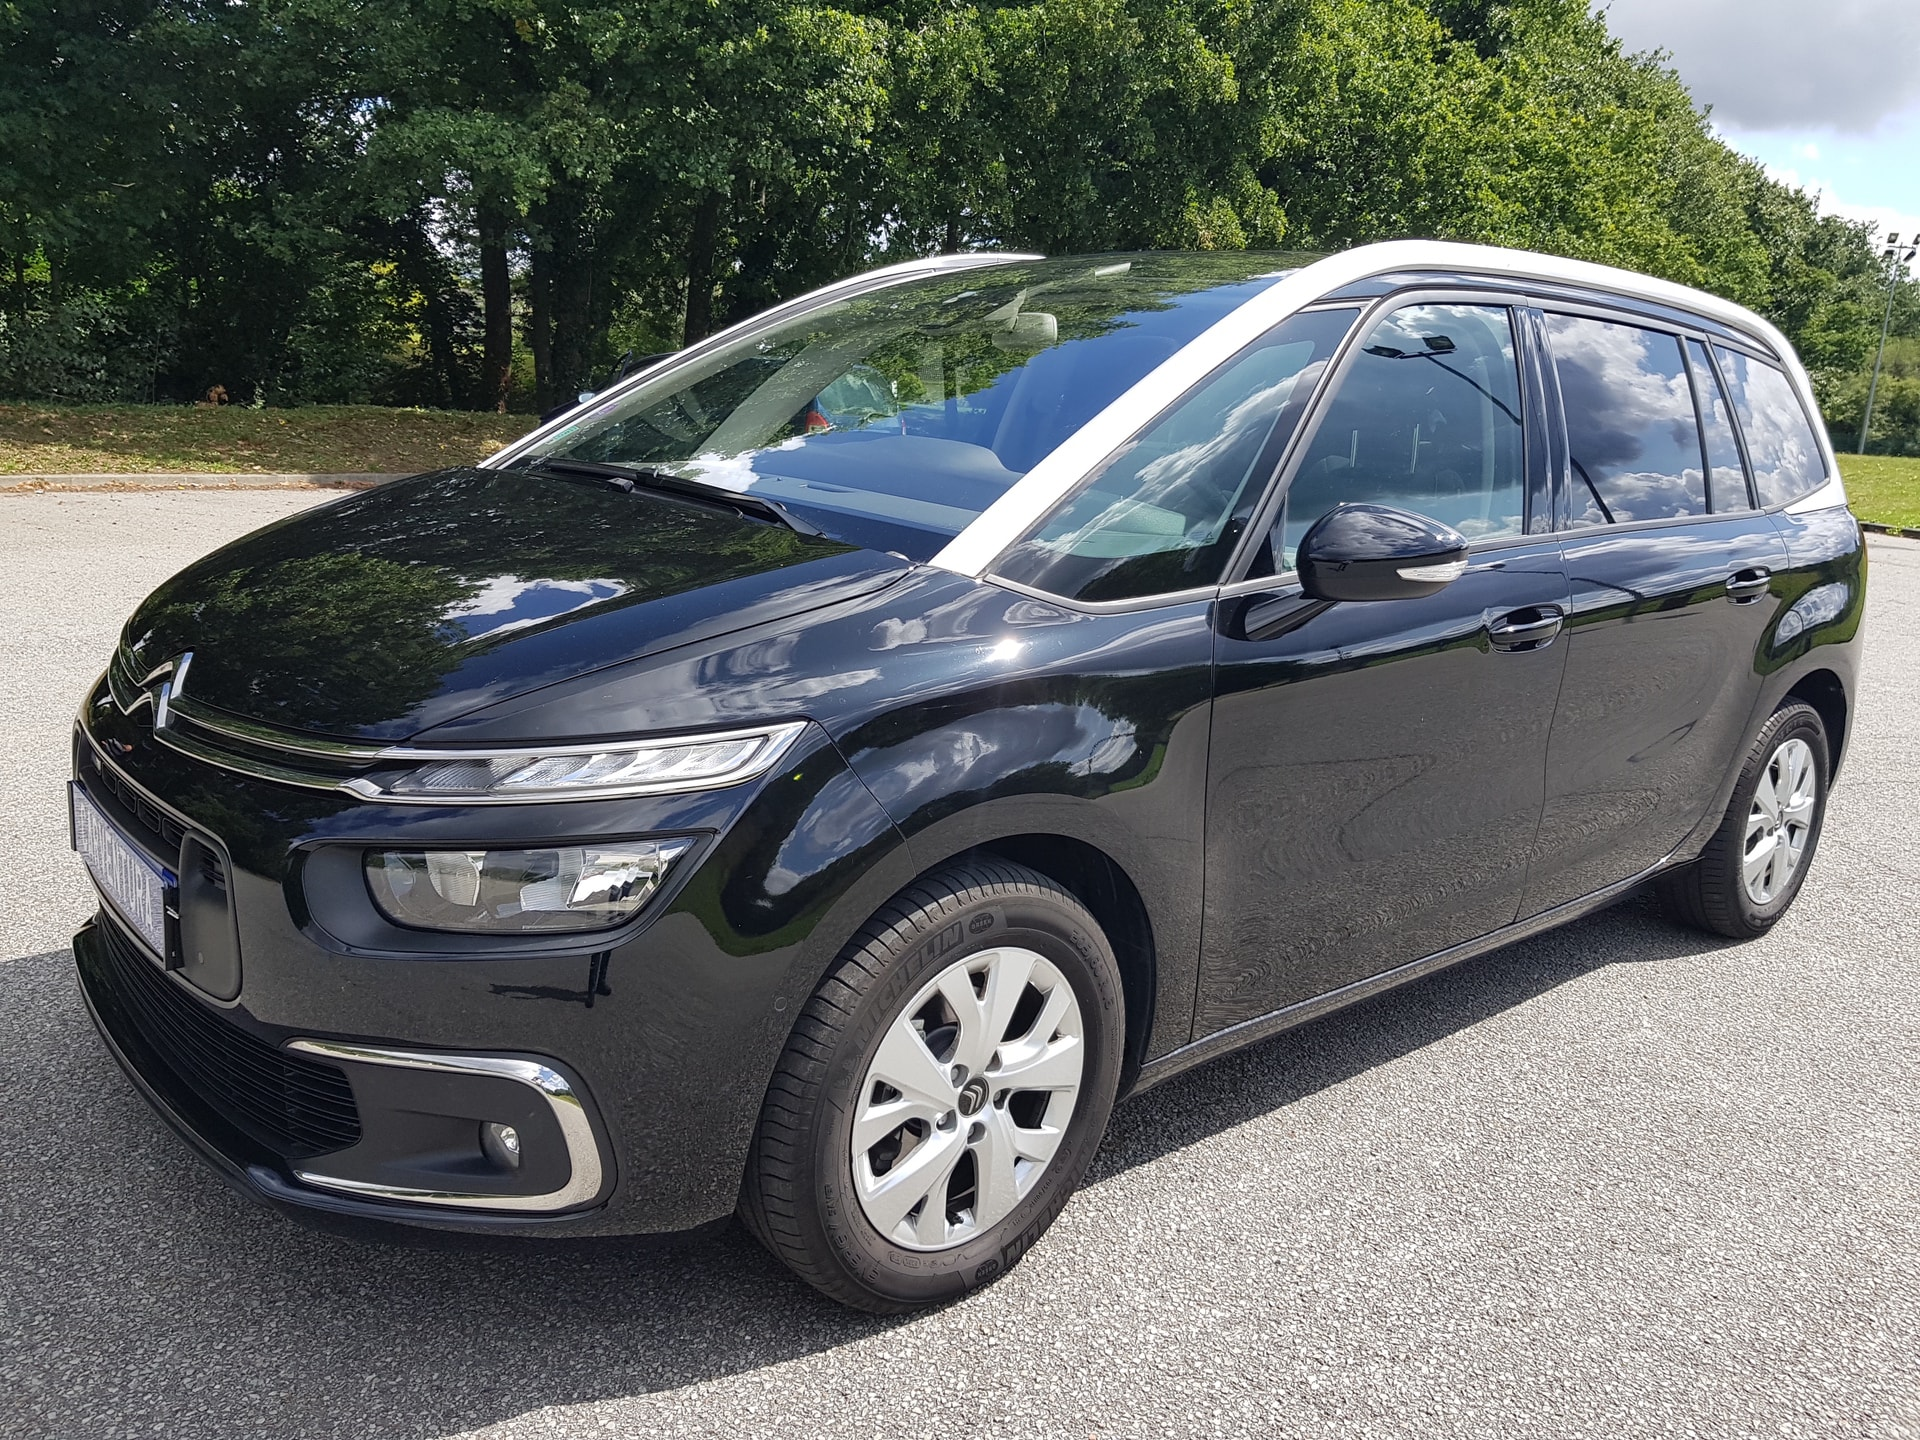 citroen c4 grand picasso 1 2 130 puretech feel start. Black Bedroom Furniture Sets. Home Design Ideas